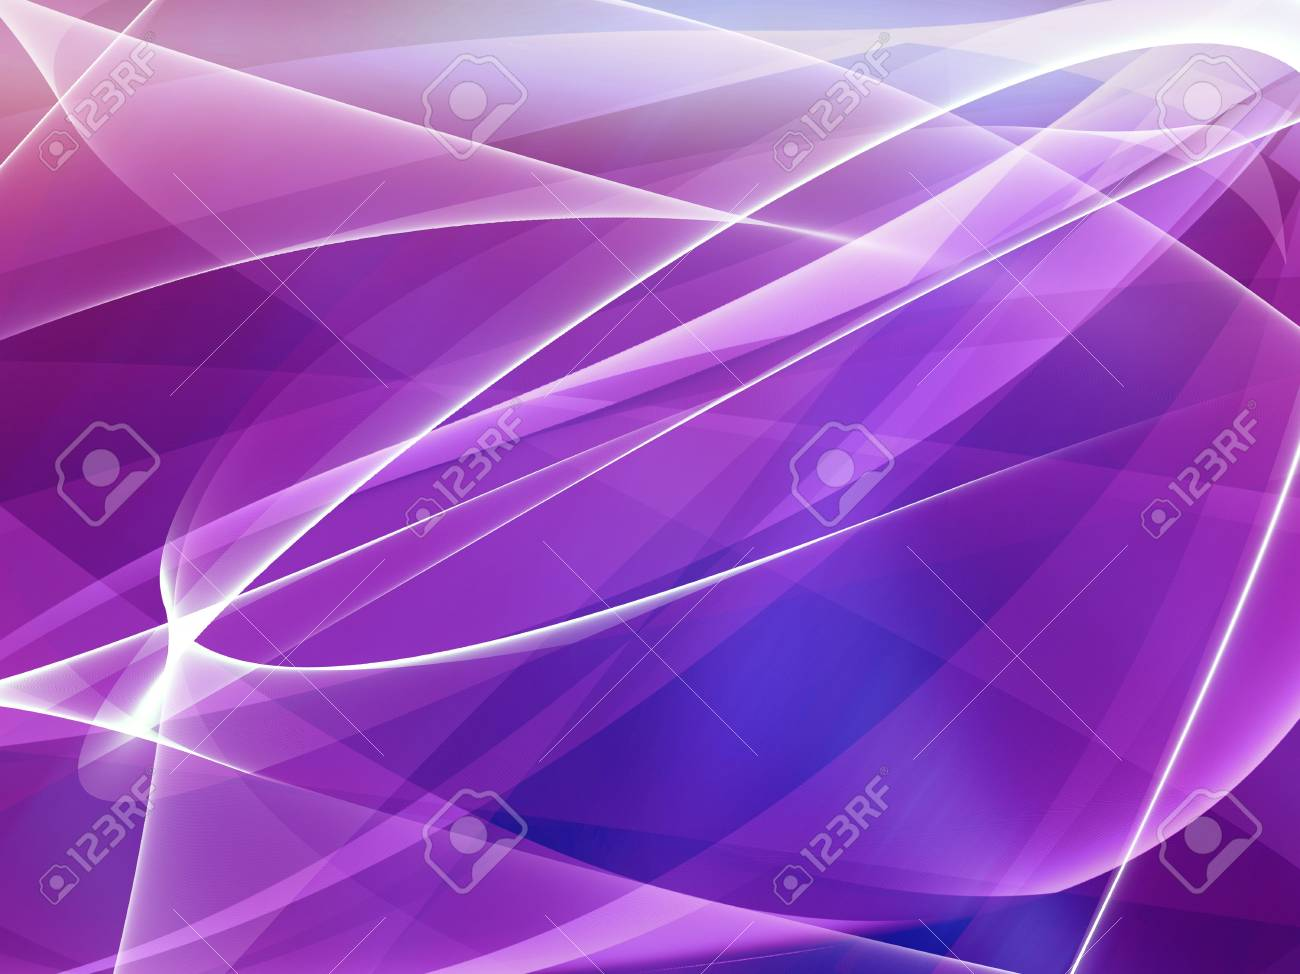 abstract background wallpaper poster graphic art picture Stock Photo - 752698